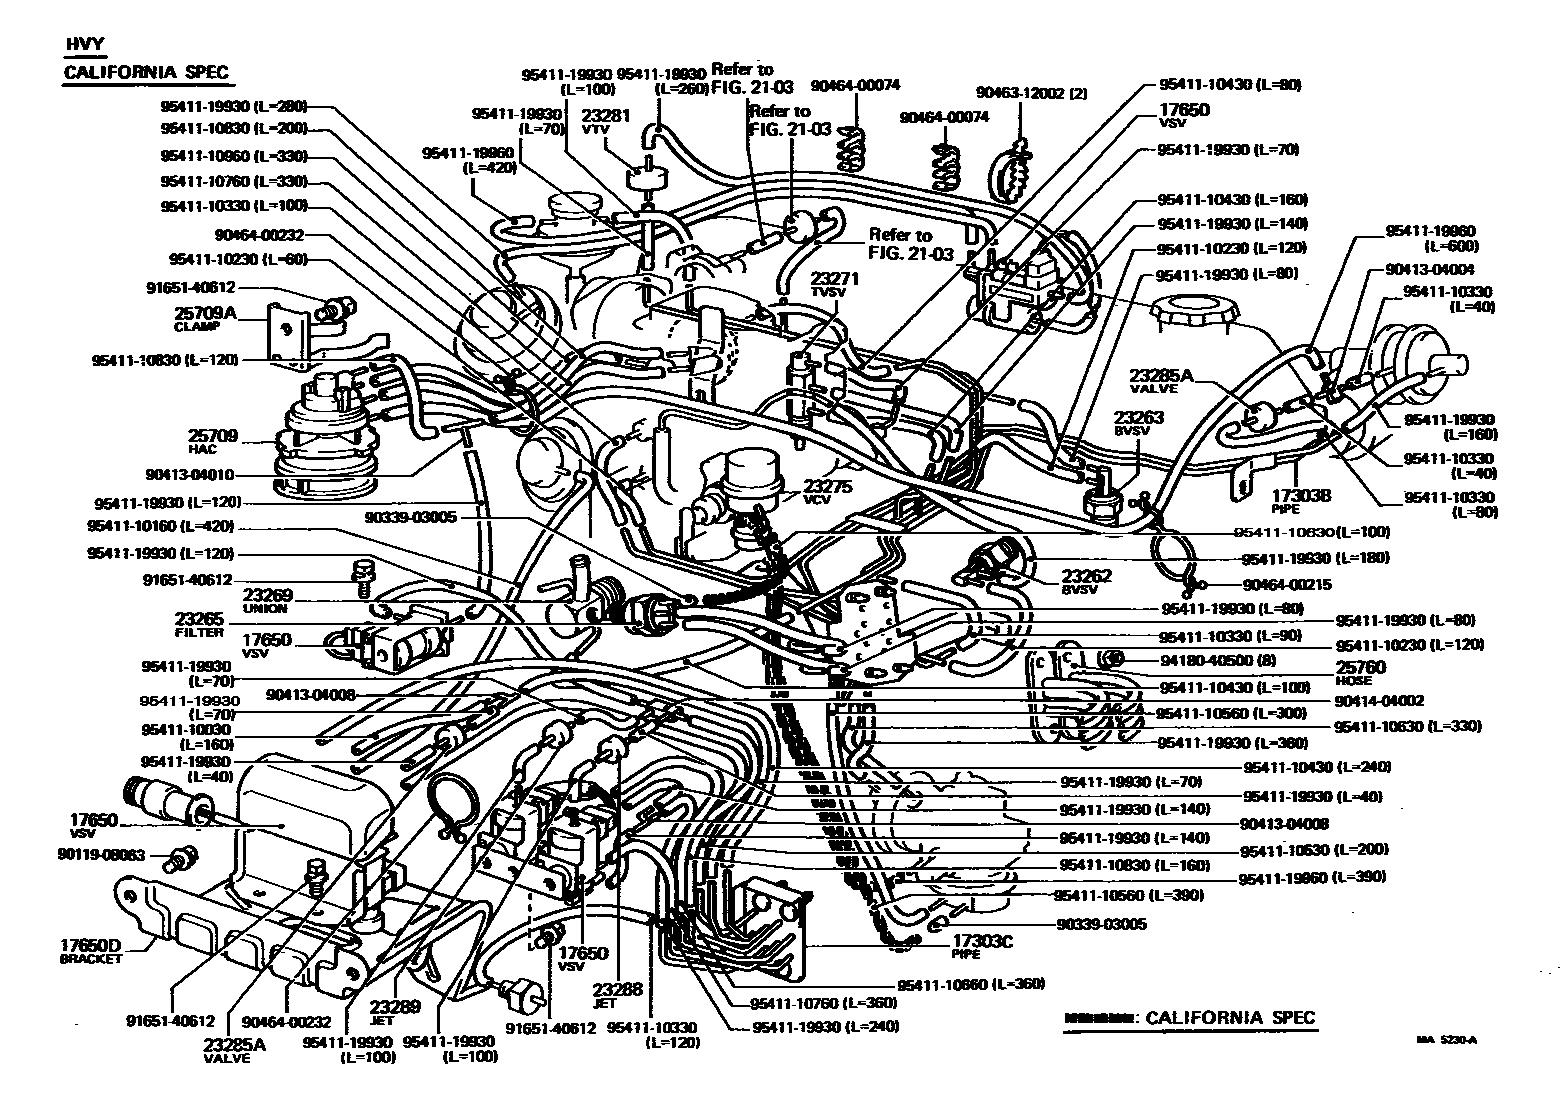 hight resolution of 3vze engine diagram schematic diagramstoyota 3 0 v6 engine sensor diagram simple wiring diagram 5vzfe engine